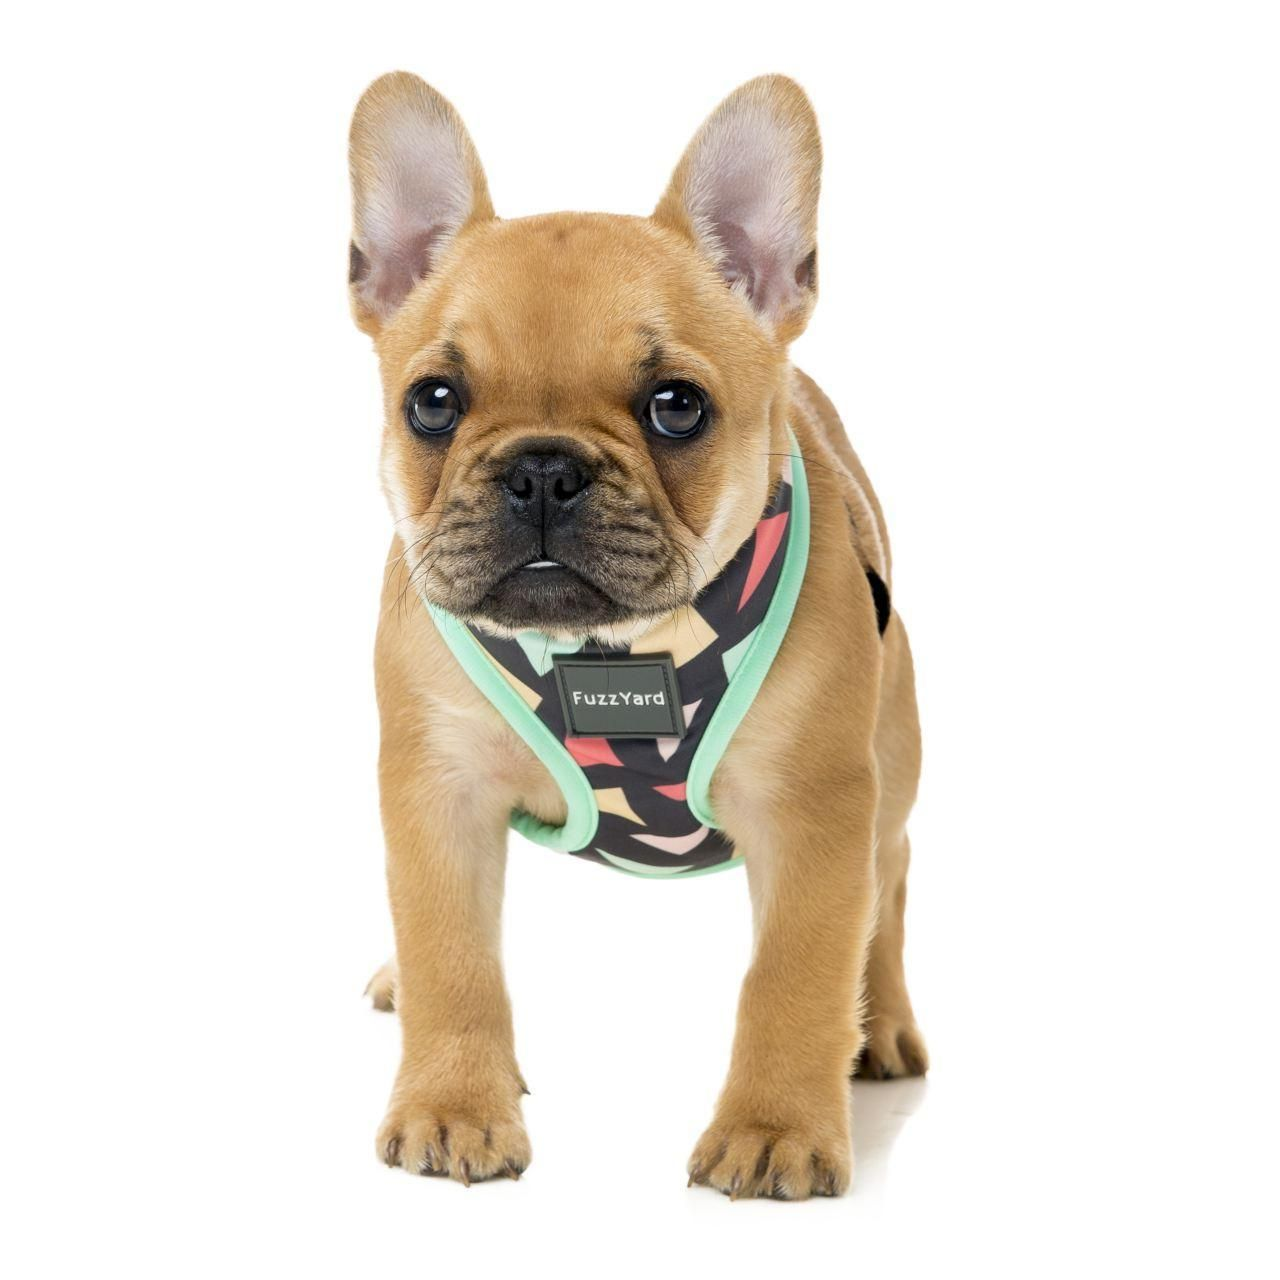 Fuzzyard Rad Dog Harness At Fetch Co Uk The Online Pet Store